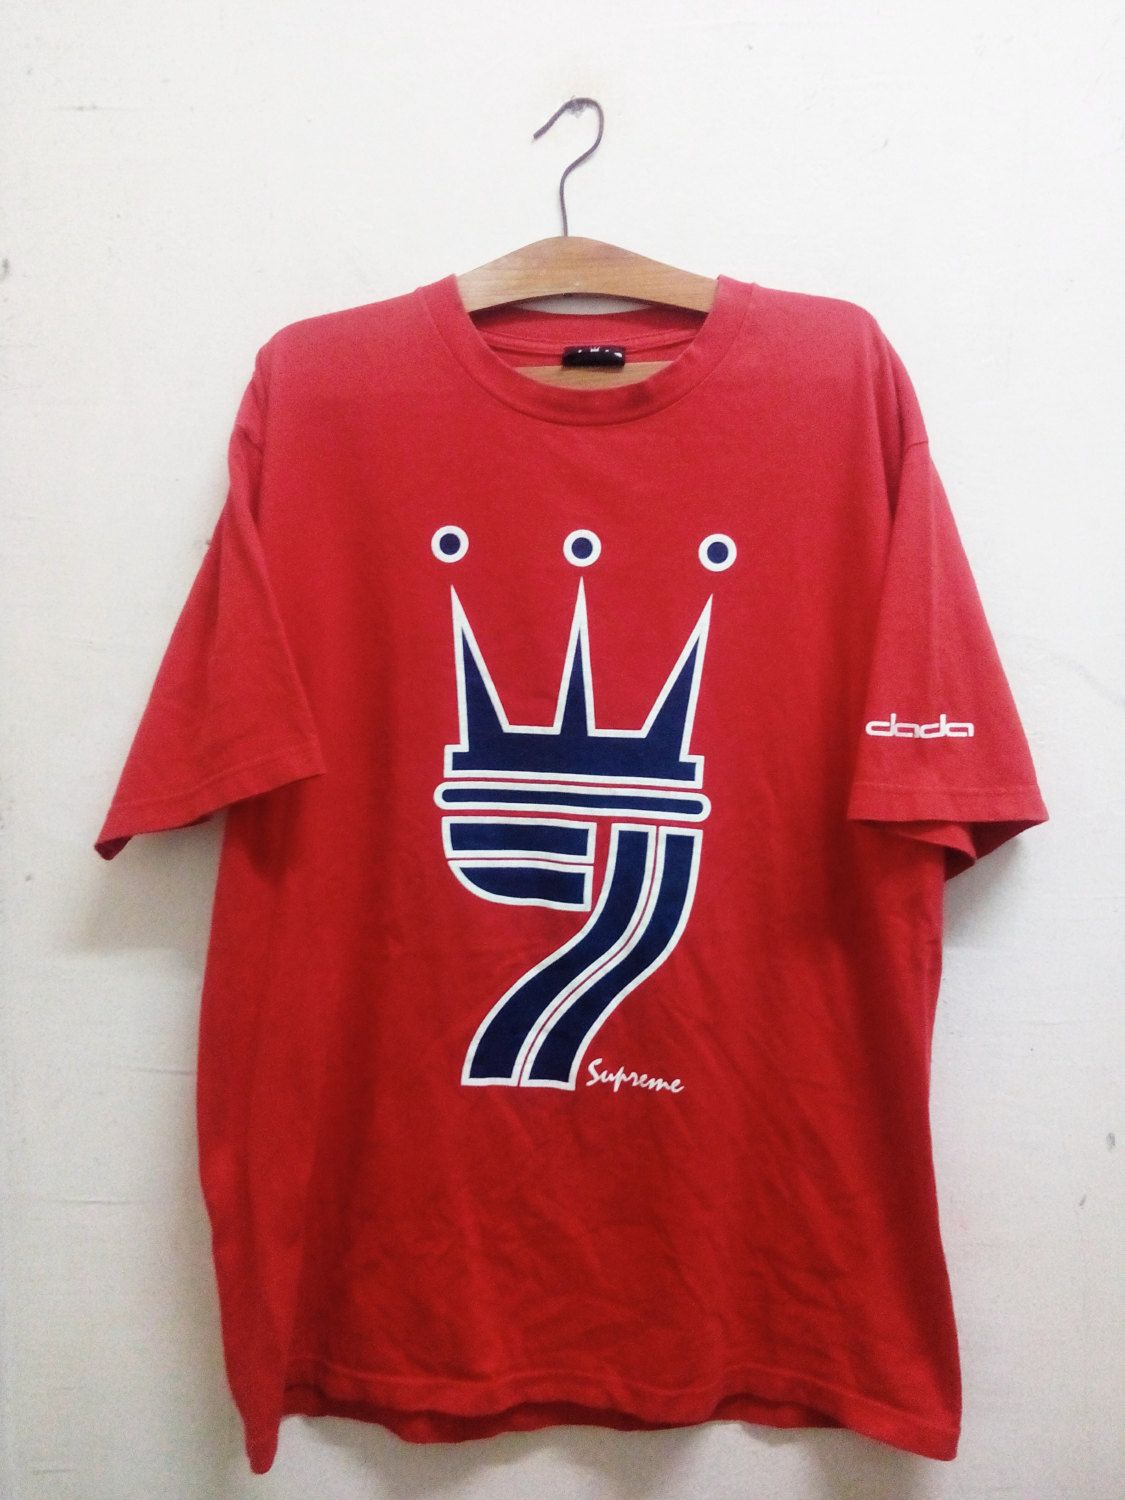 buy popular 3e0a8 11271 Vintage 90 s Hip Hop Clothing Dada Supreme by Mike Cherry Big Logo Designs  Spell Out Celebrity Fashion Red Color Sz L by Psychovault on Etsy